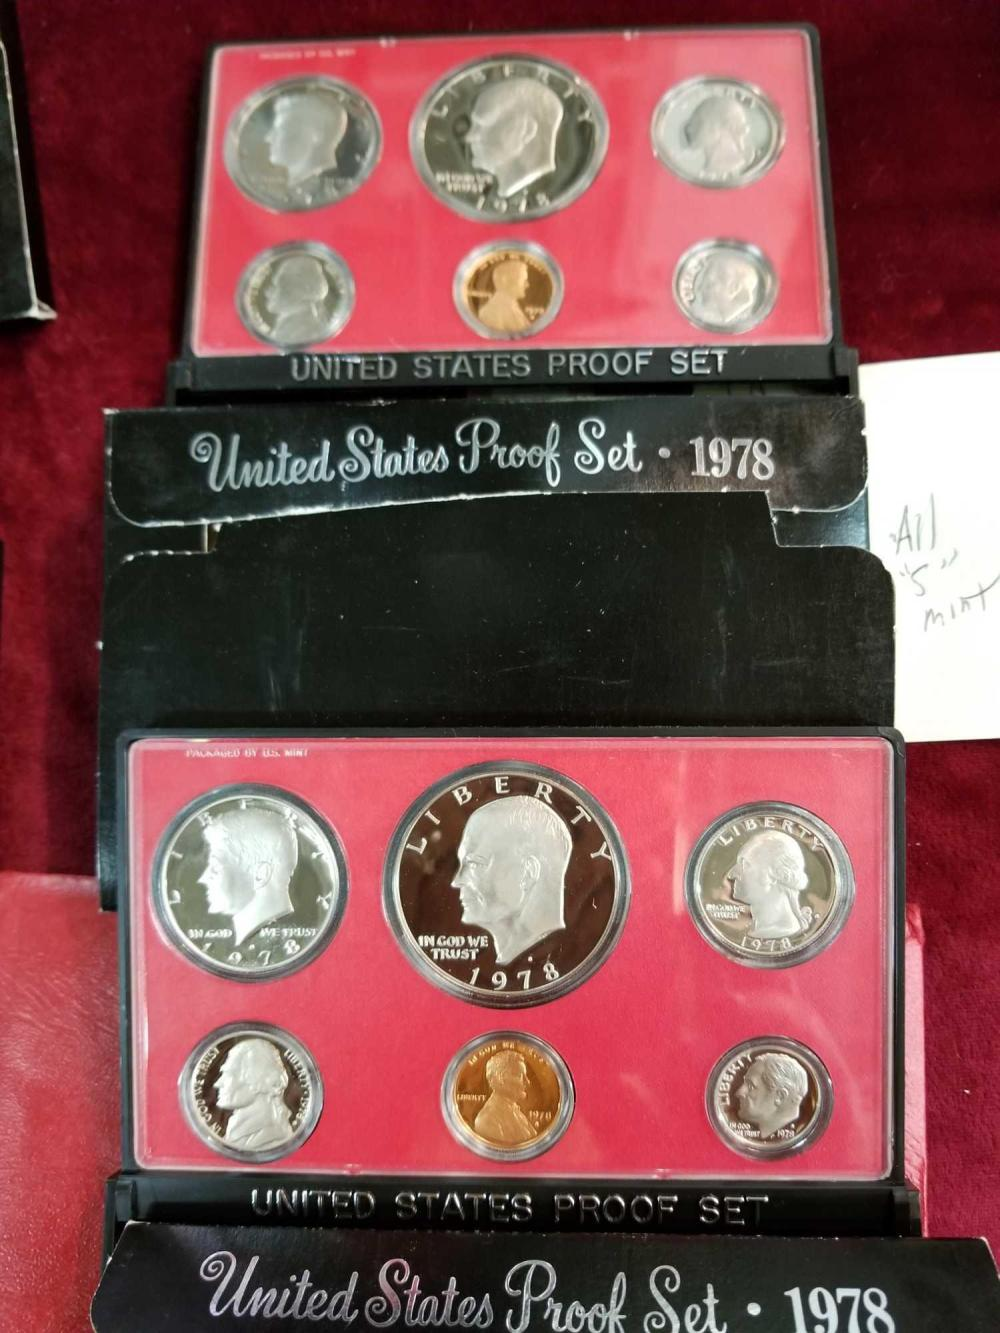 1978 U.S. COIN PROOF SETS - 2 ITEMS